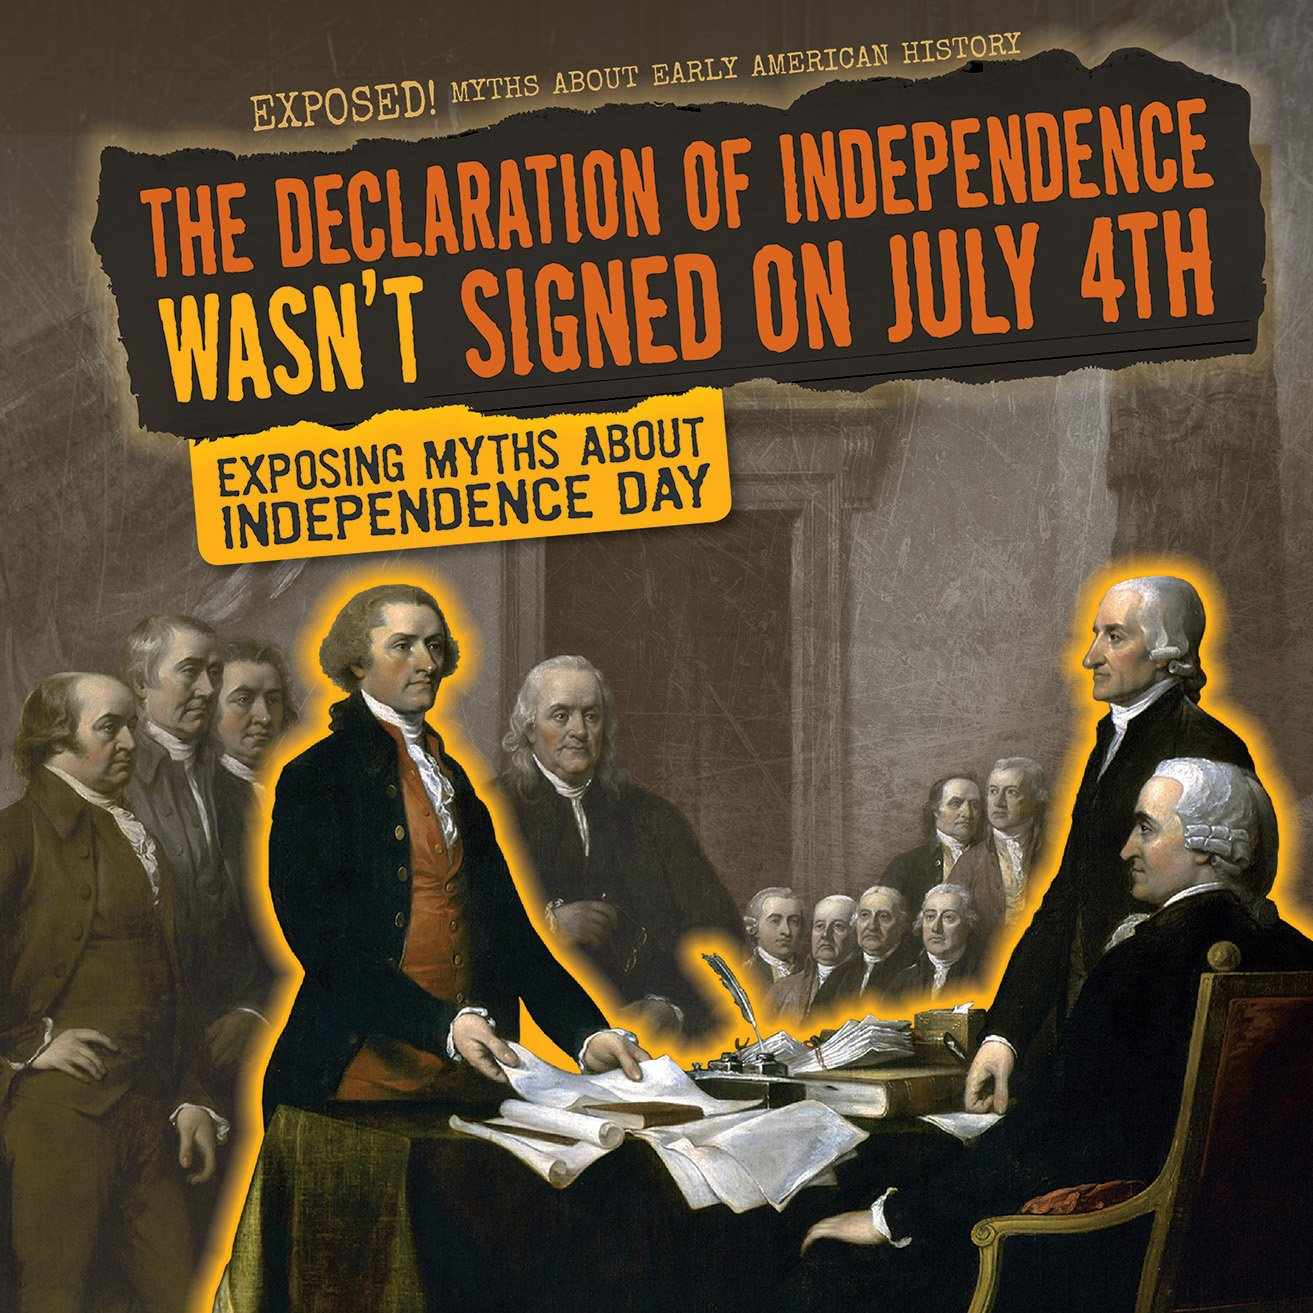 The Declaration of Independence Wasn't Signed on July 4th: Exposing Myths About Independence Day (Exposed! Myths About Early American History)